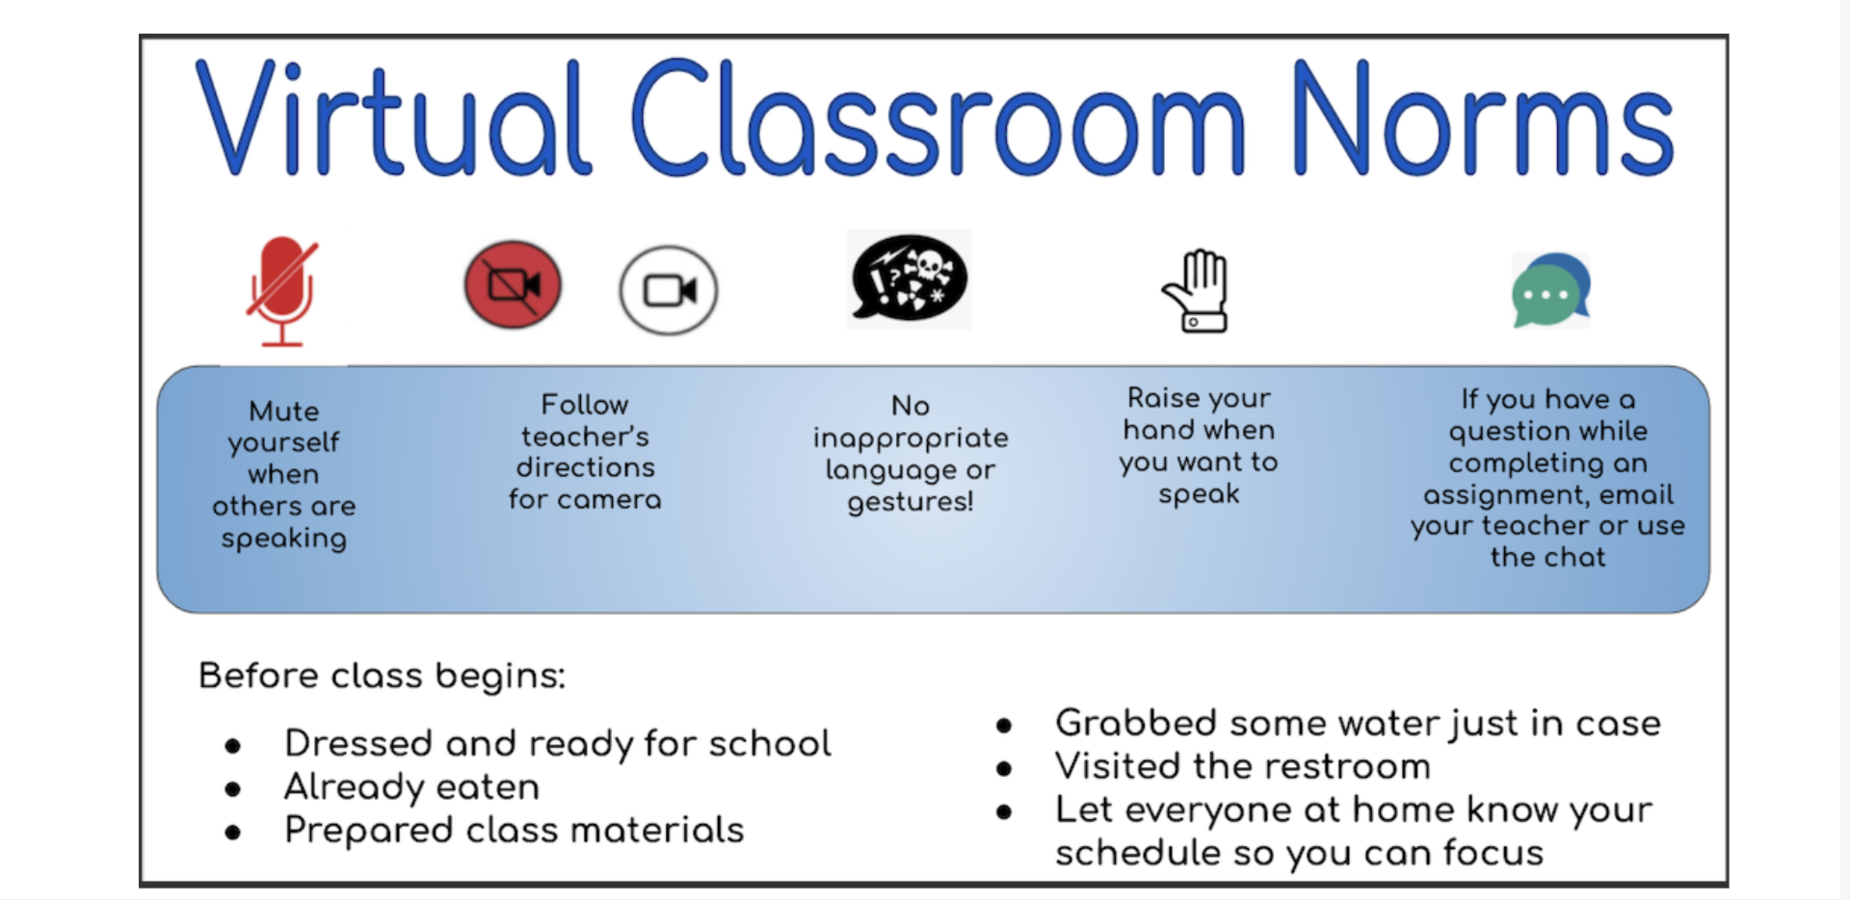 Screen shot of Virtual Classroom Norms